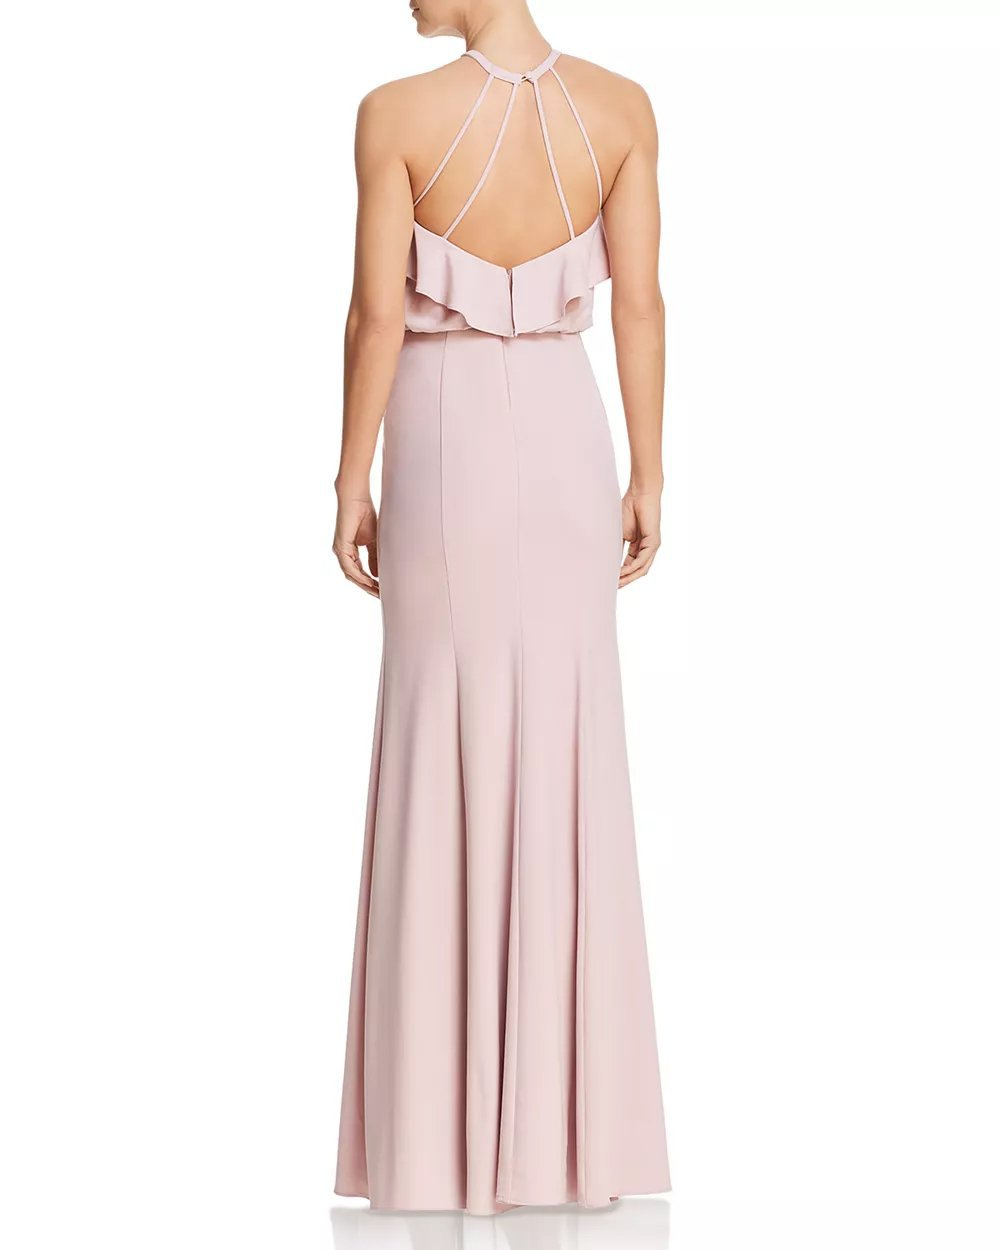 Decode 1.8 - 184609 Tiered Flounce Long Halter Dress In Pink